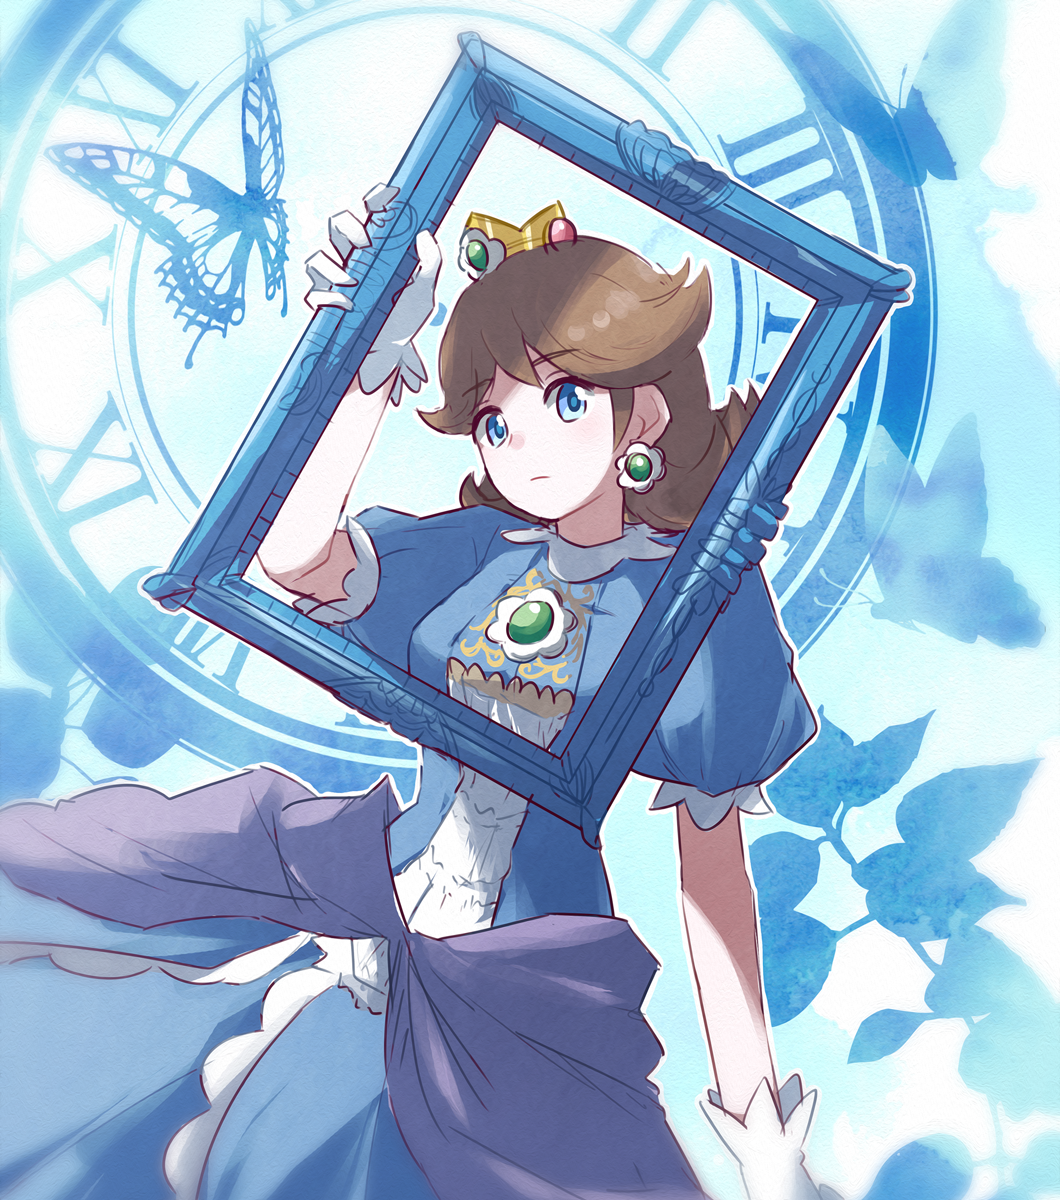 1girl alternate_color blue_dress blue_eyes brooch brown_hair bug butterfly clock closed_mouth crown dress earrings eyebrows_visible_through_hair flipped_hair flower_earrings frown gem gloves hand_up highres holding insect jewelry mario_(series) medium_hair misowhite nintendo outline princess princess_daisy puffy_short_sleeves puffy_sleeves roman_numerals short_sleeves super_smash_bros. white_gloves white_outline